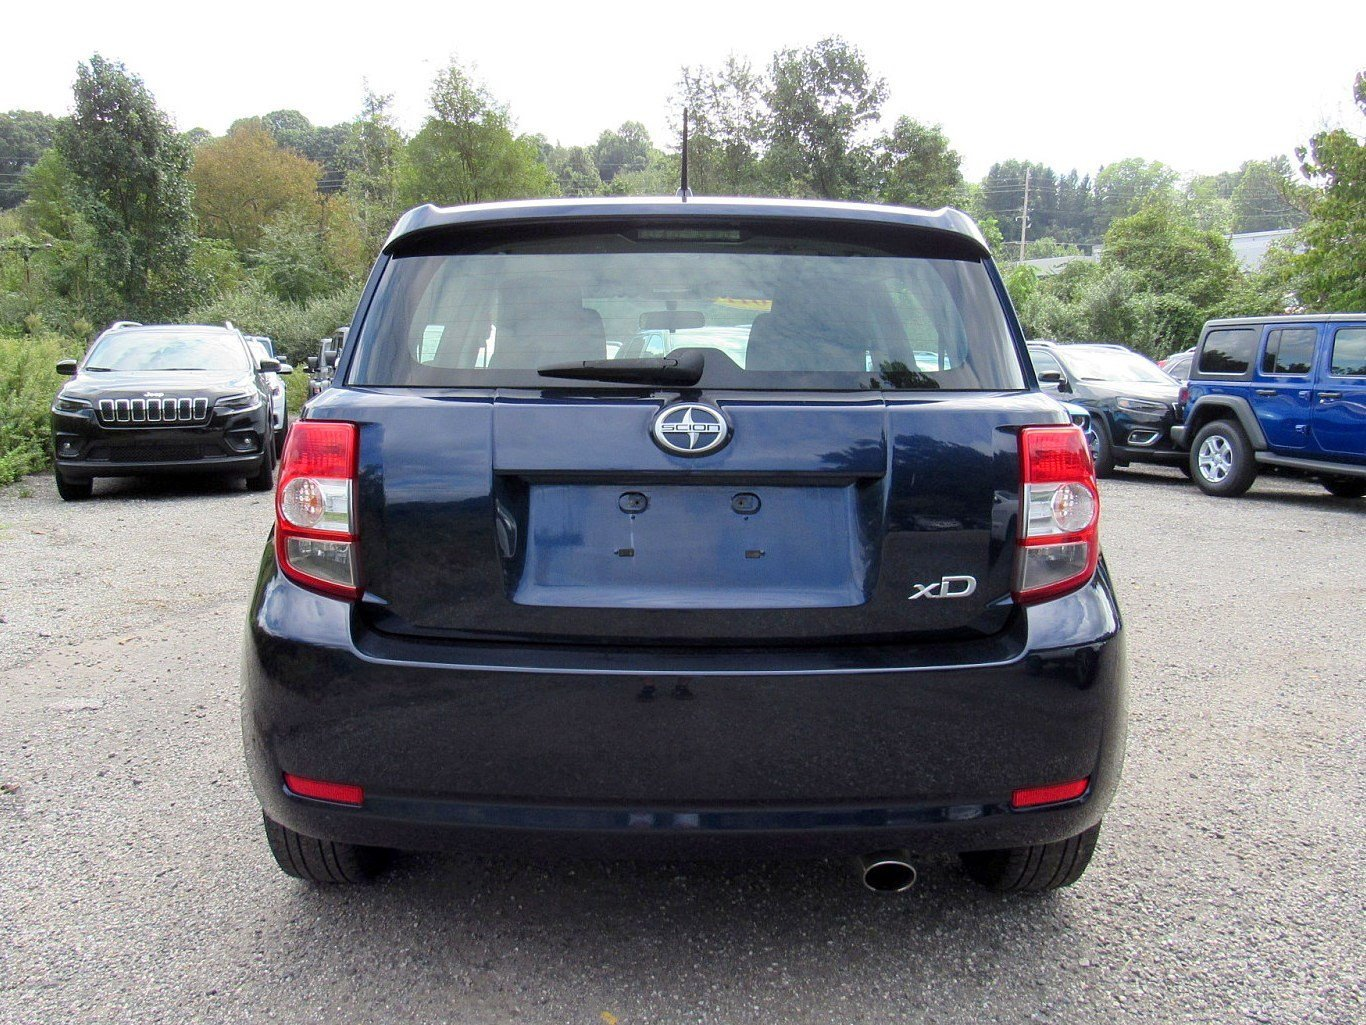 Pre Owned 2011 Scion Xd 5dr Hb At Hatchback In Newtown Square 2008 Fuel Filter J1328a Videon Chrysler Dodge Jeep Ram